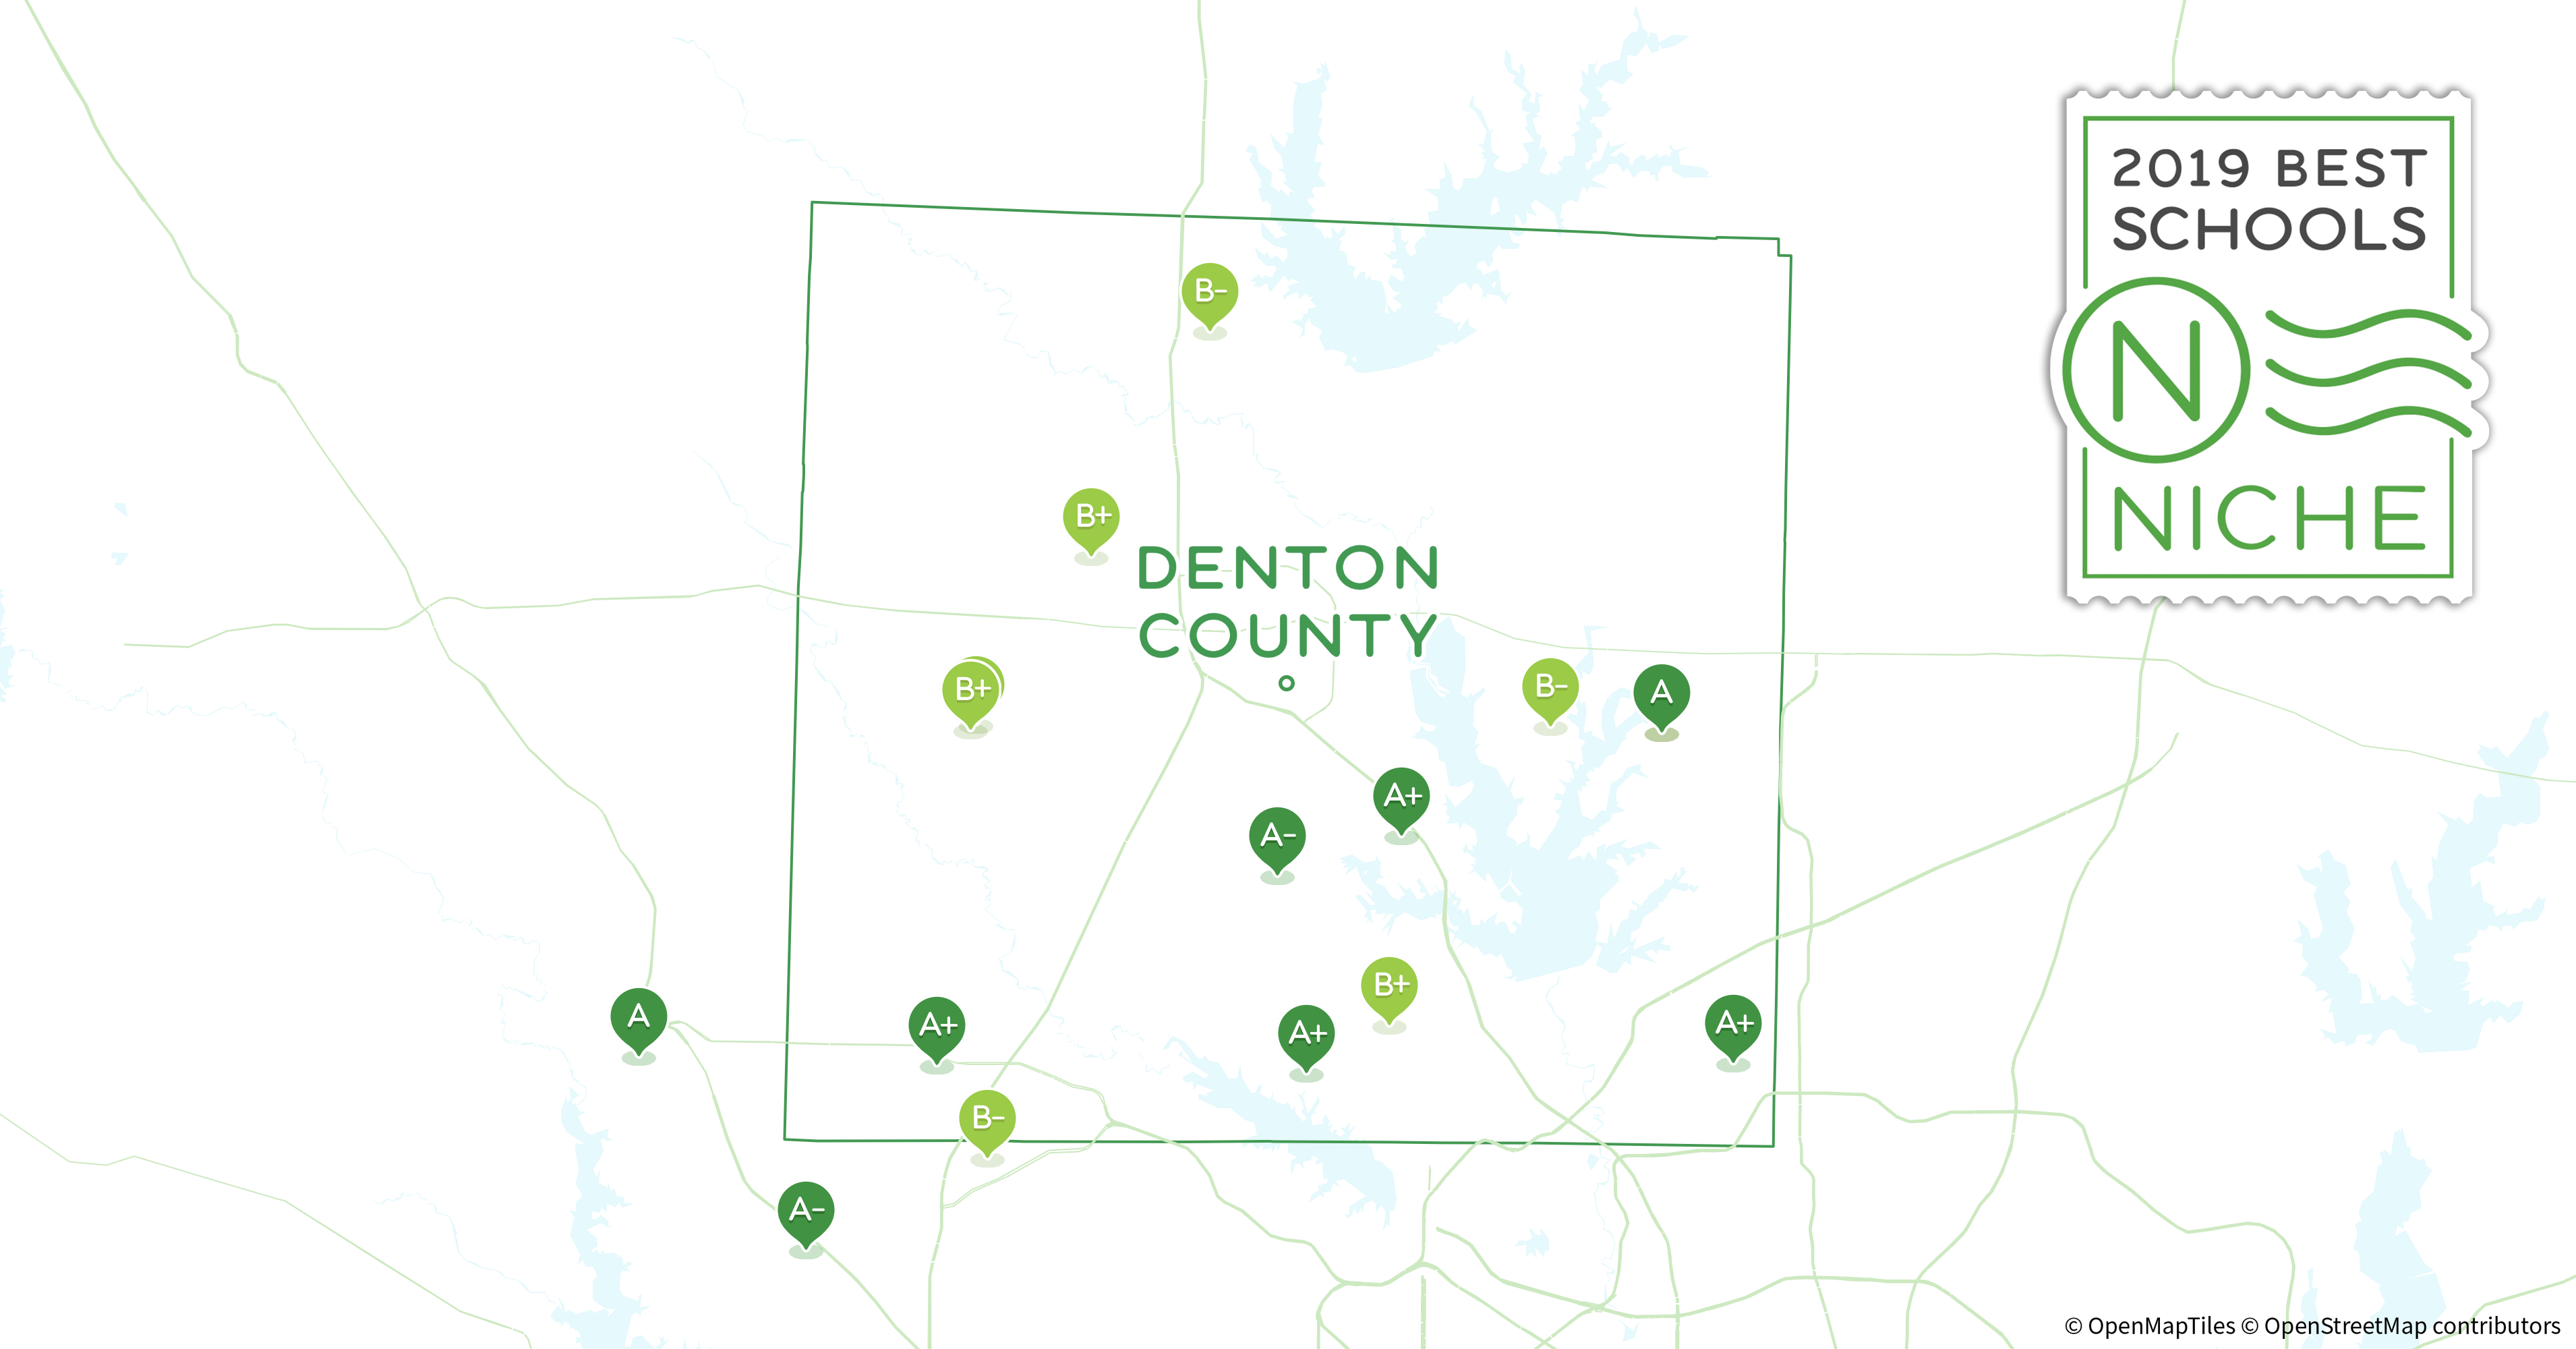 Denton Ohio Map.Private Schools In Denton County Tx Niche